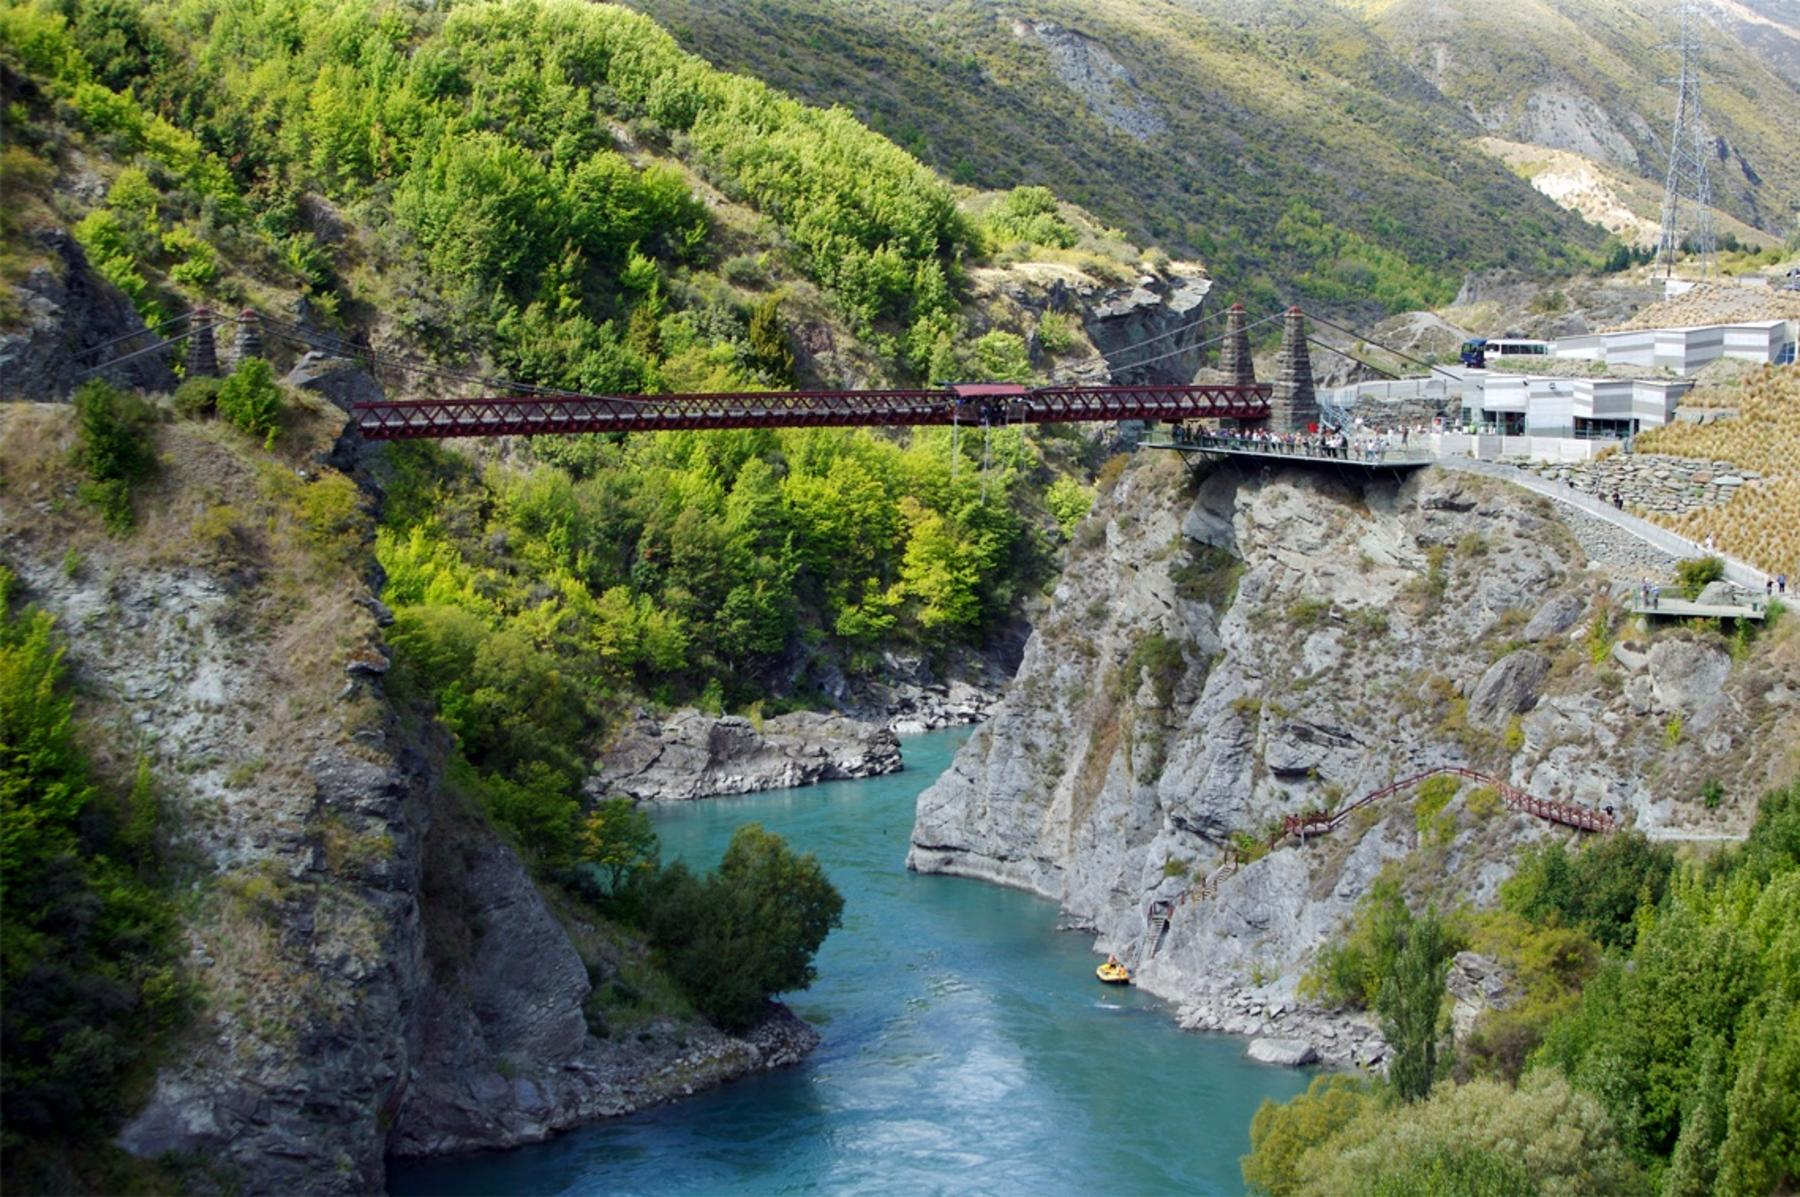 Panoramic photo of the Kawarau Bridge Bungy Centre